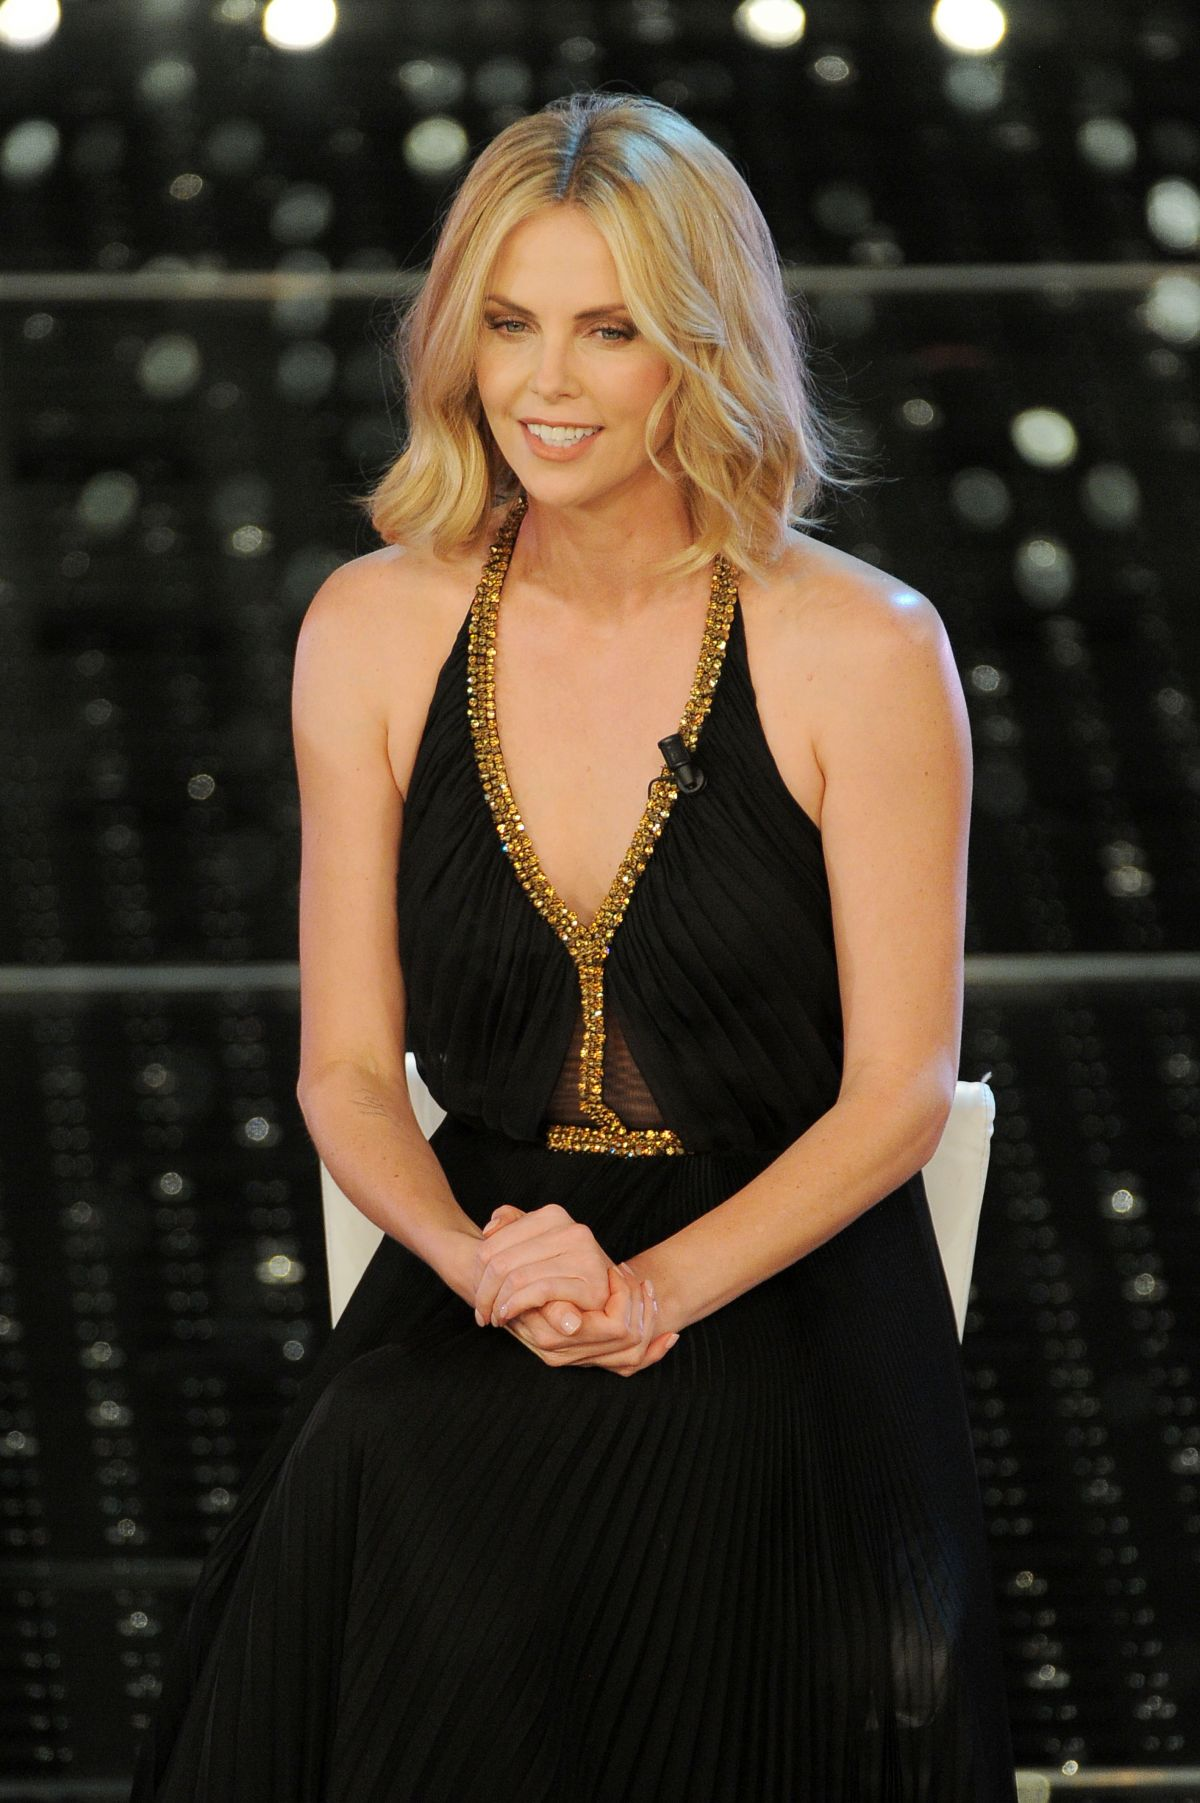 CHARLIZE THERON at 2015 Sanremo Music Festival